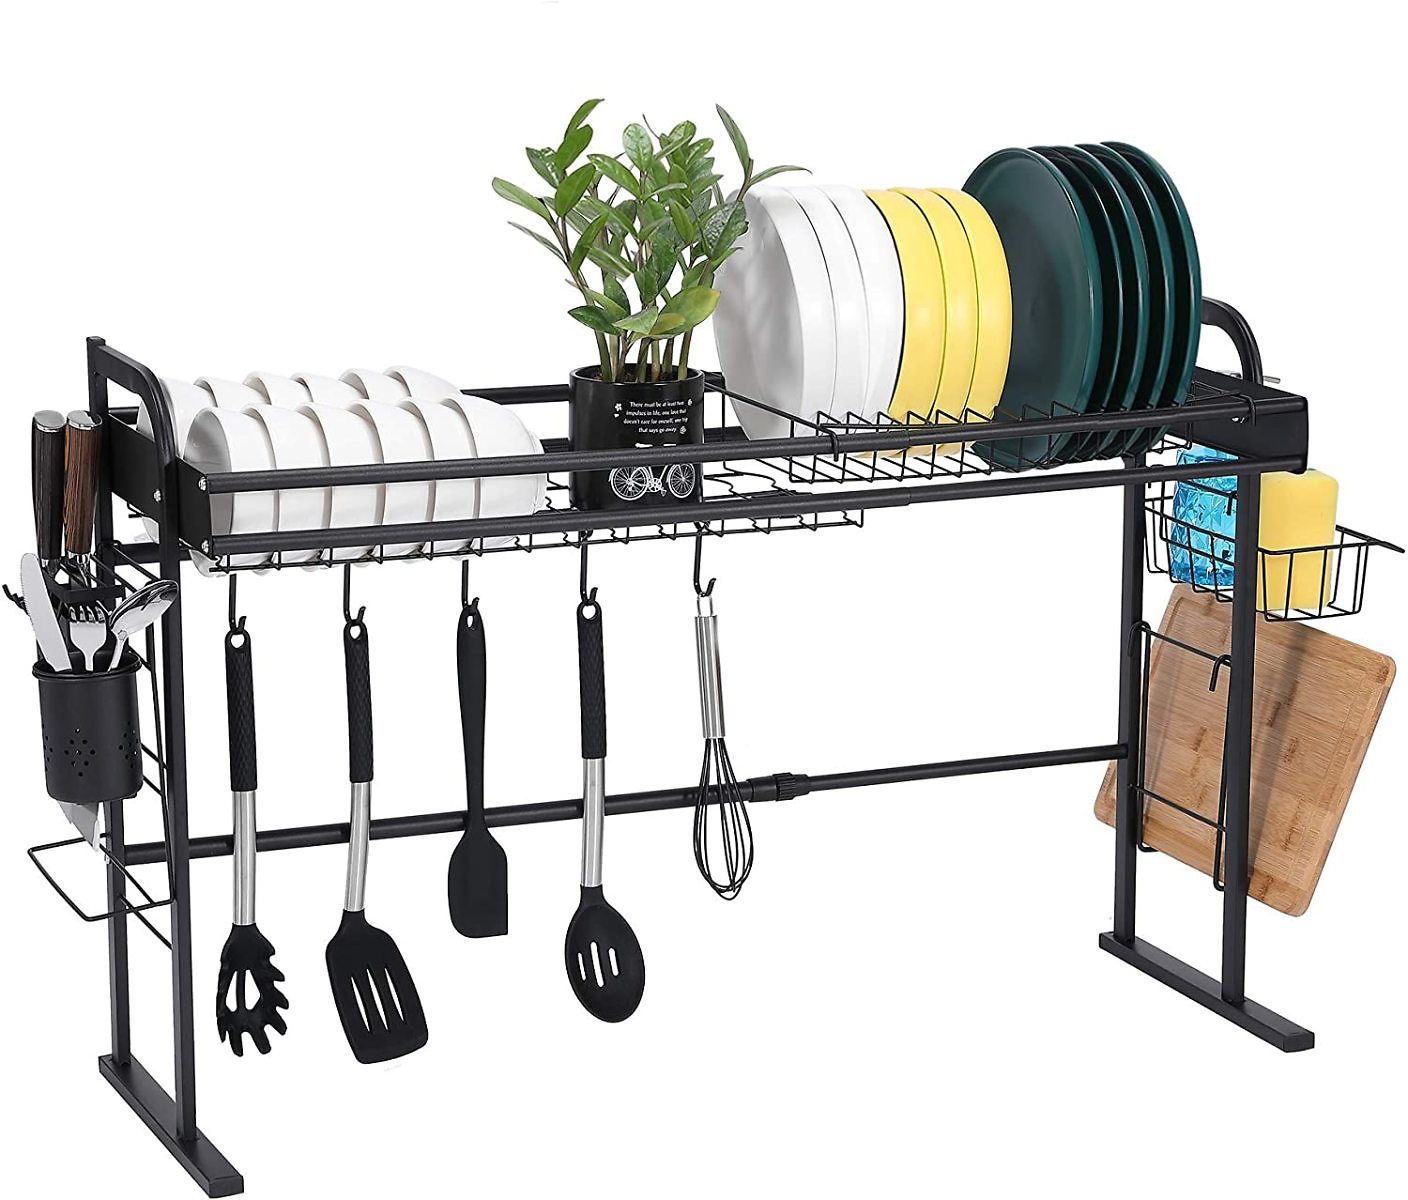 Over The Sink Dish Drying Rack, JSK Adjustable Stainless Steel Dish Rack for Kitchen Organization Storage Drainer Dish Rack Over Sink with 5 Hooks, Black (20.5